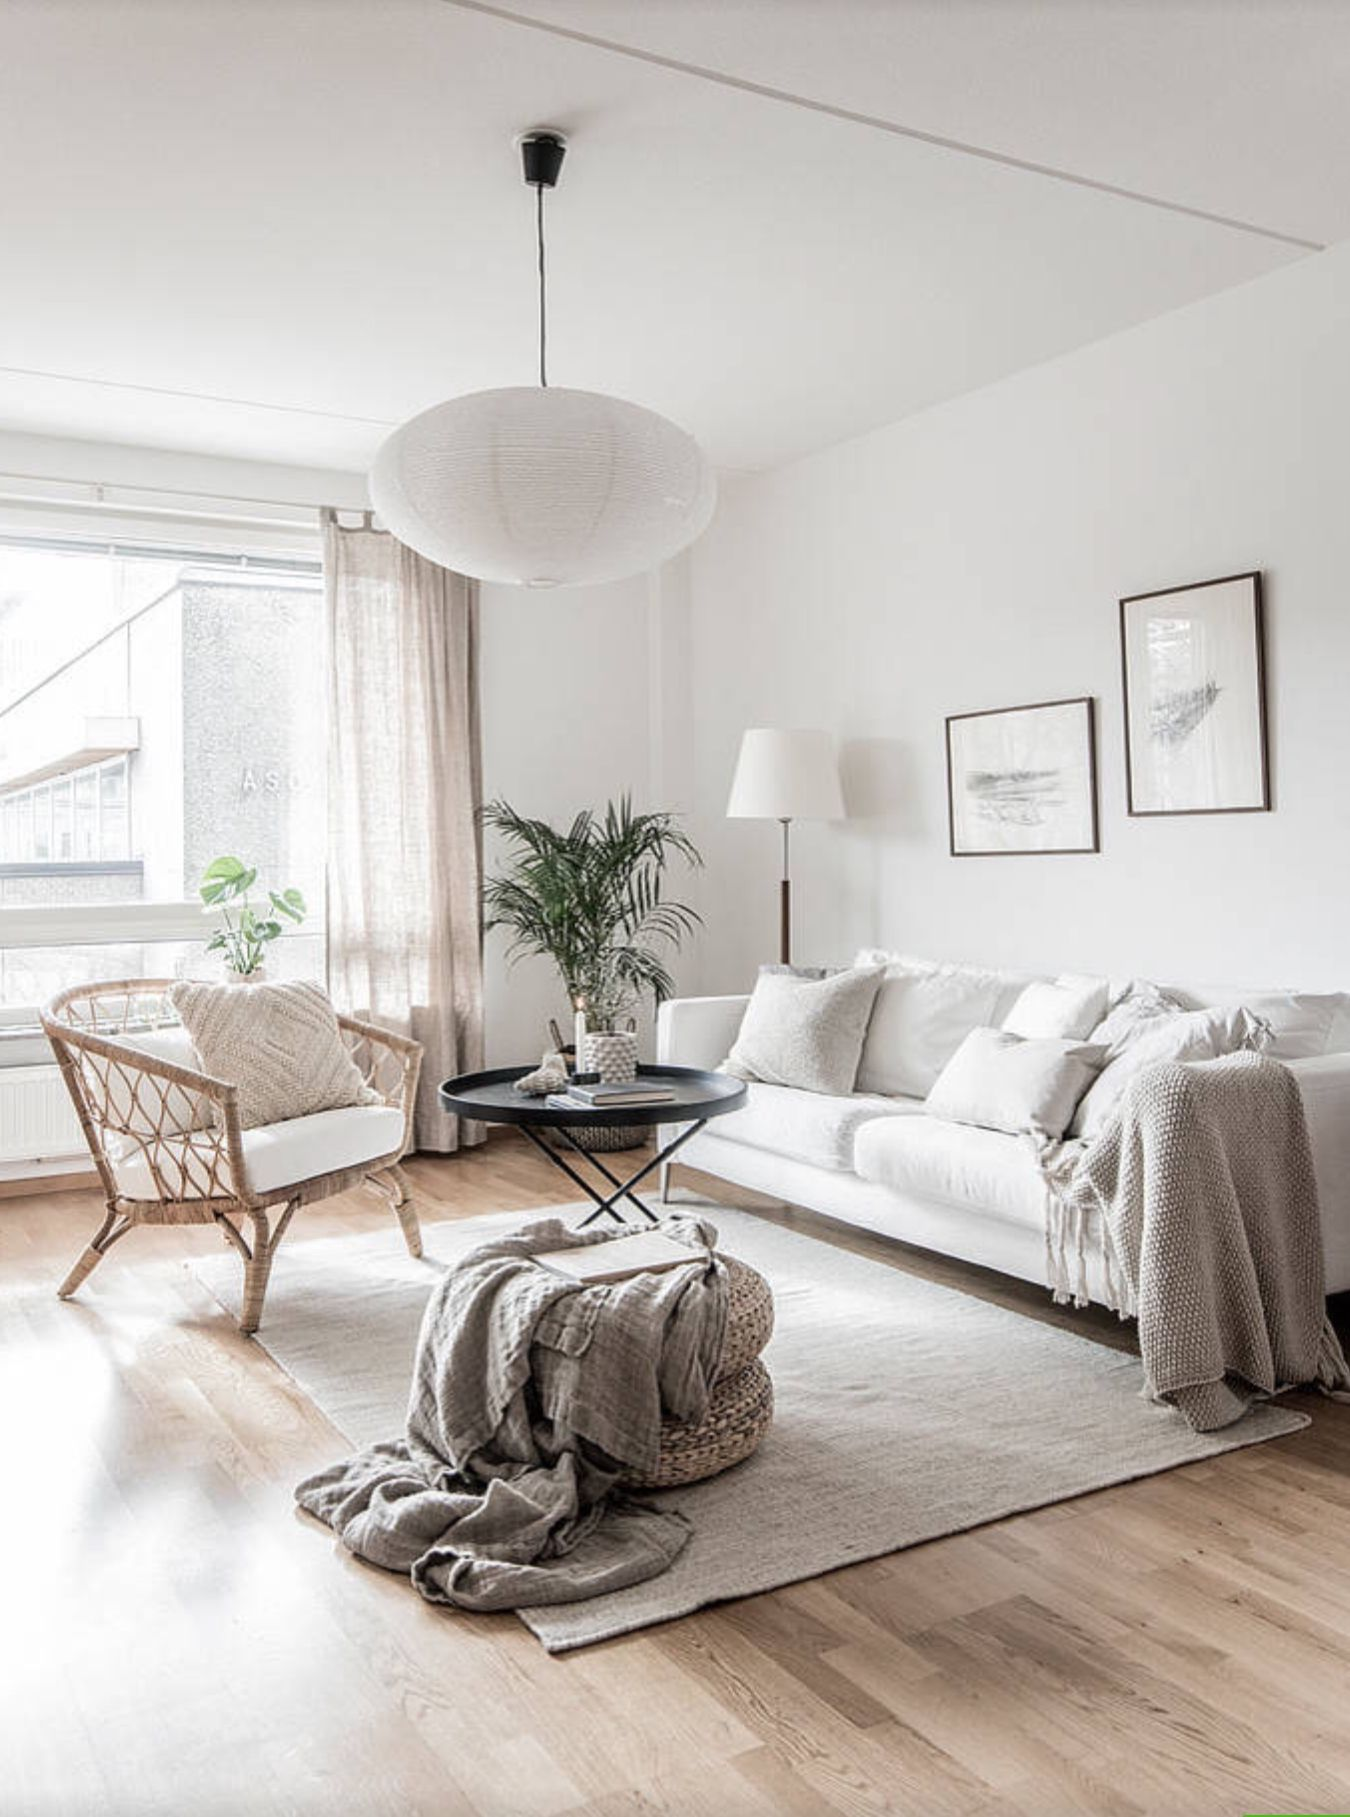 The Scandinavian Aesthetic Can Be Applied To Many Rotate Spaces It Minimalist Living Room Design Modern Minimalist Living Room Scandinavian Design Living Room